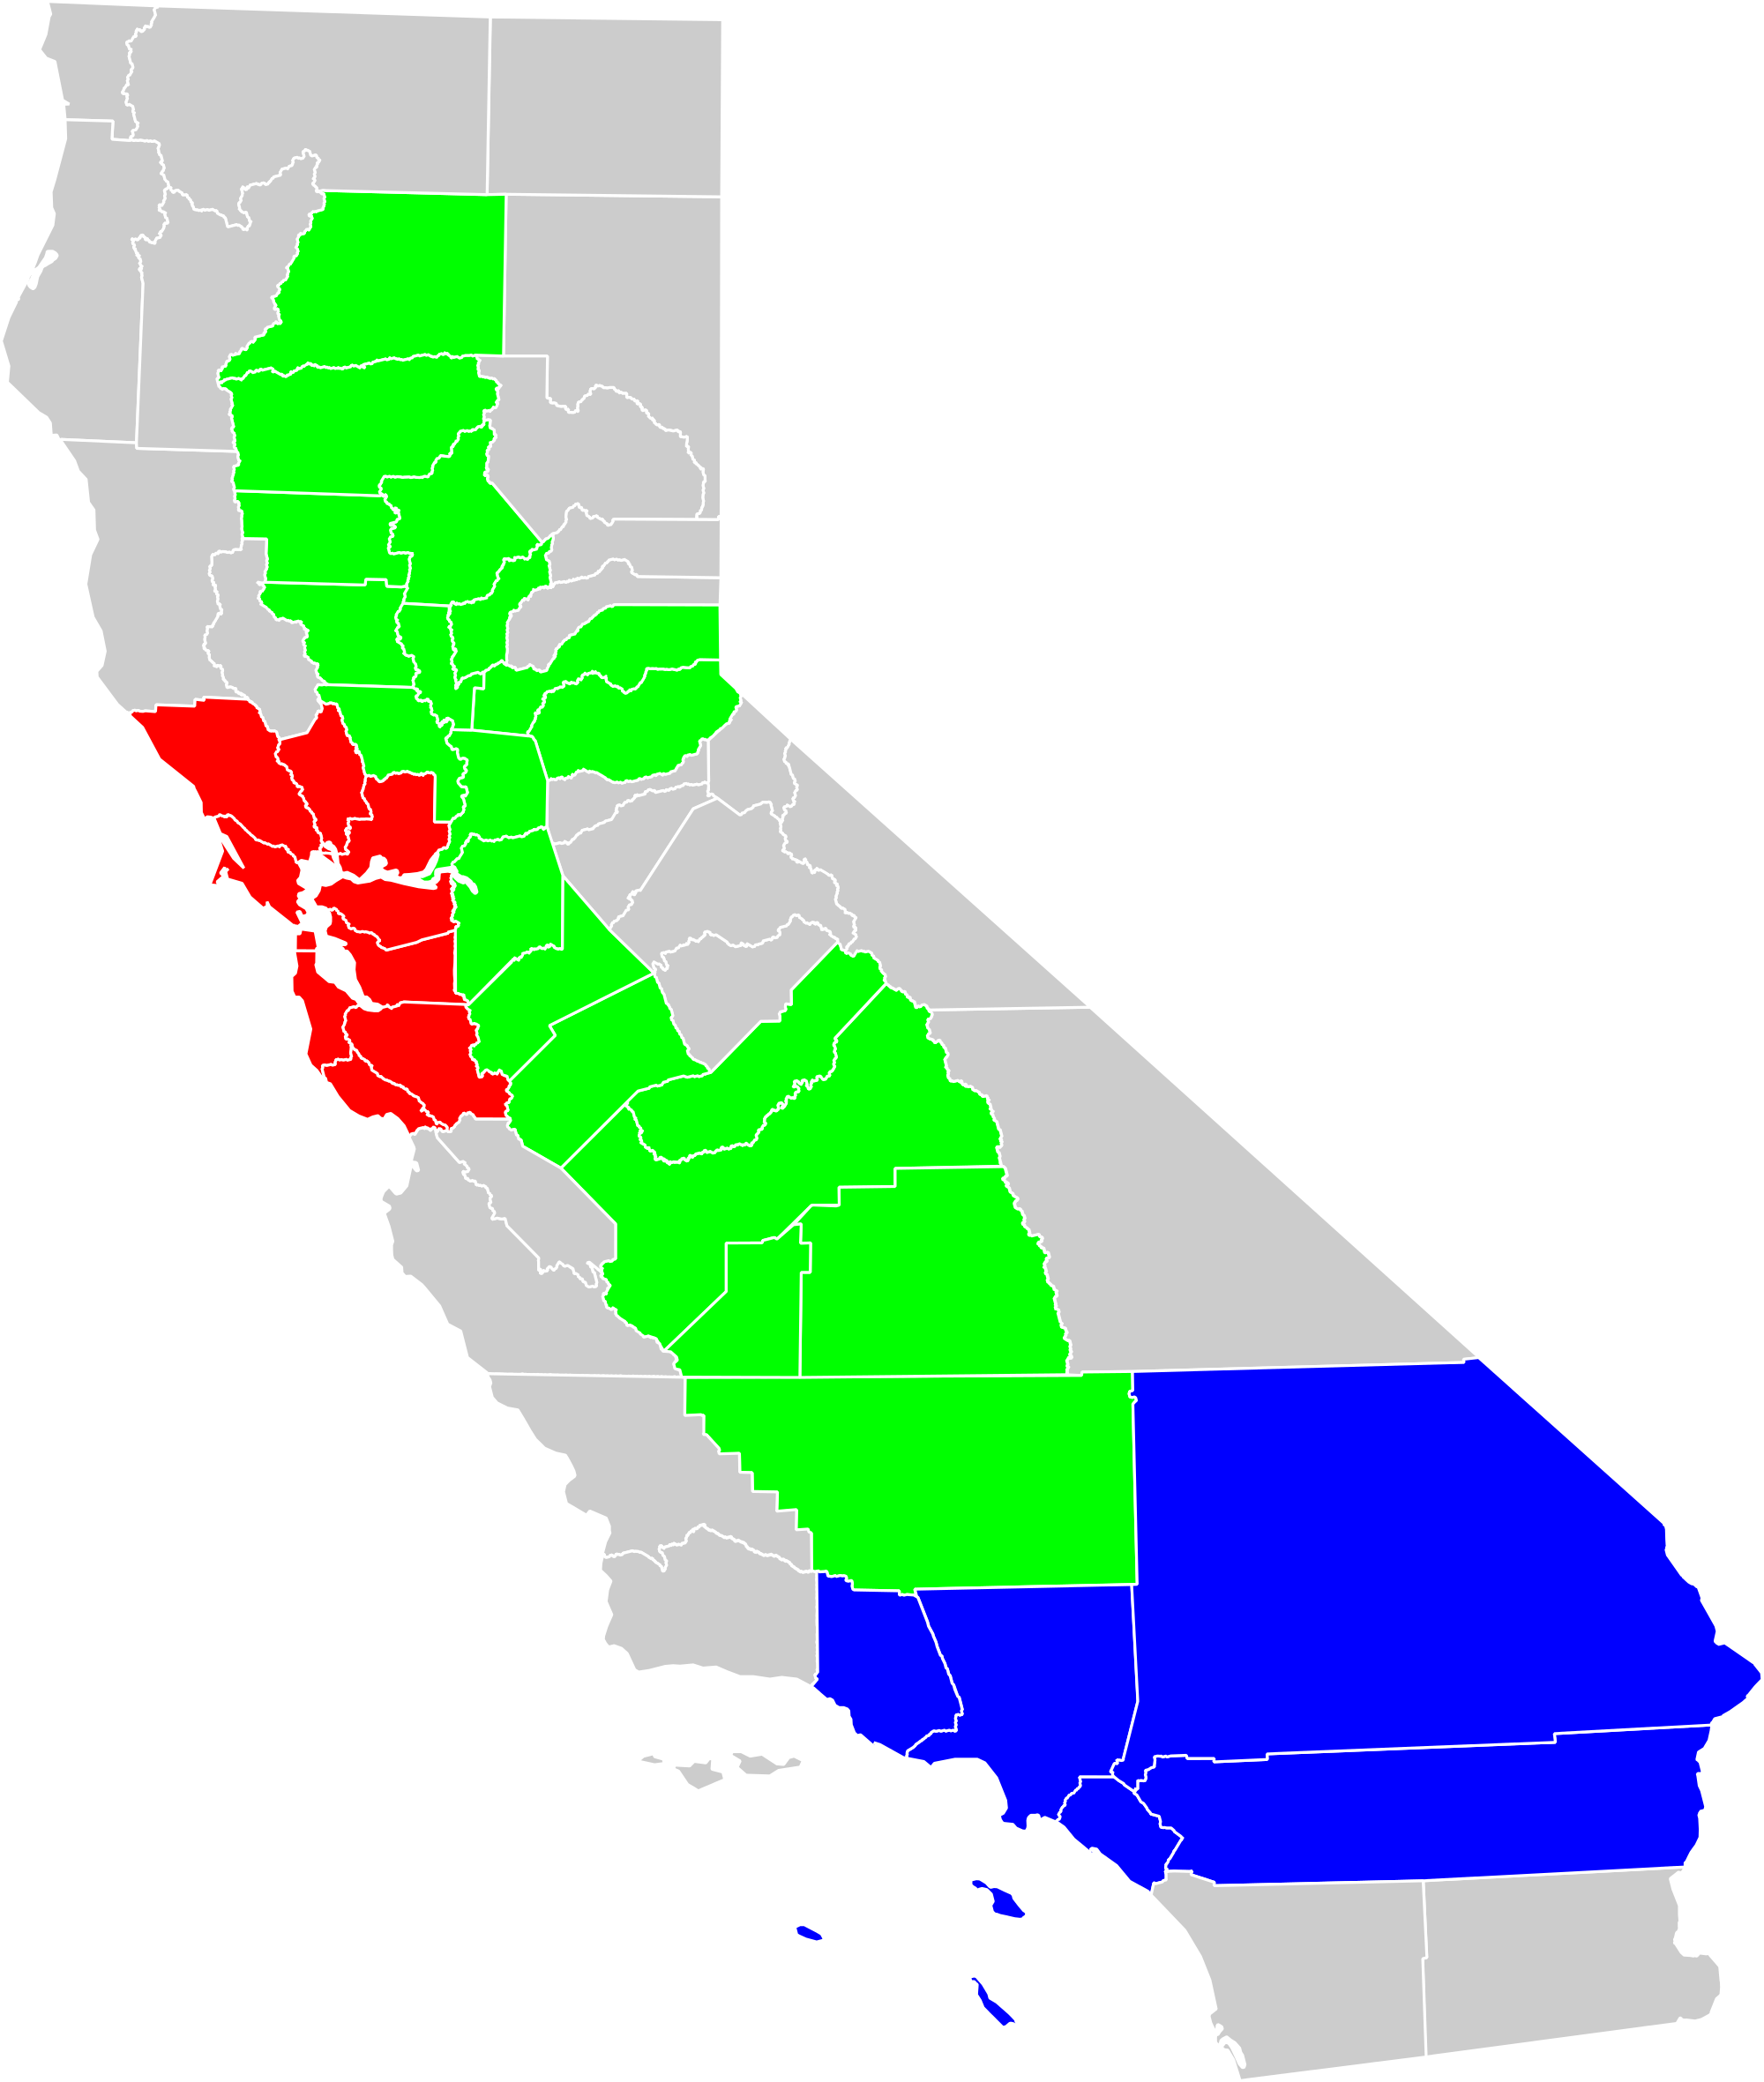 Us map highlighting california clipart picture transparent stock File:California geographical region county map.svg - Wikimedia Commons picture transparent stock